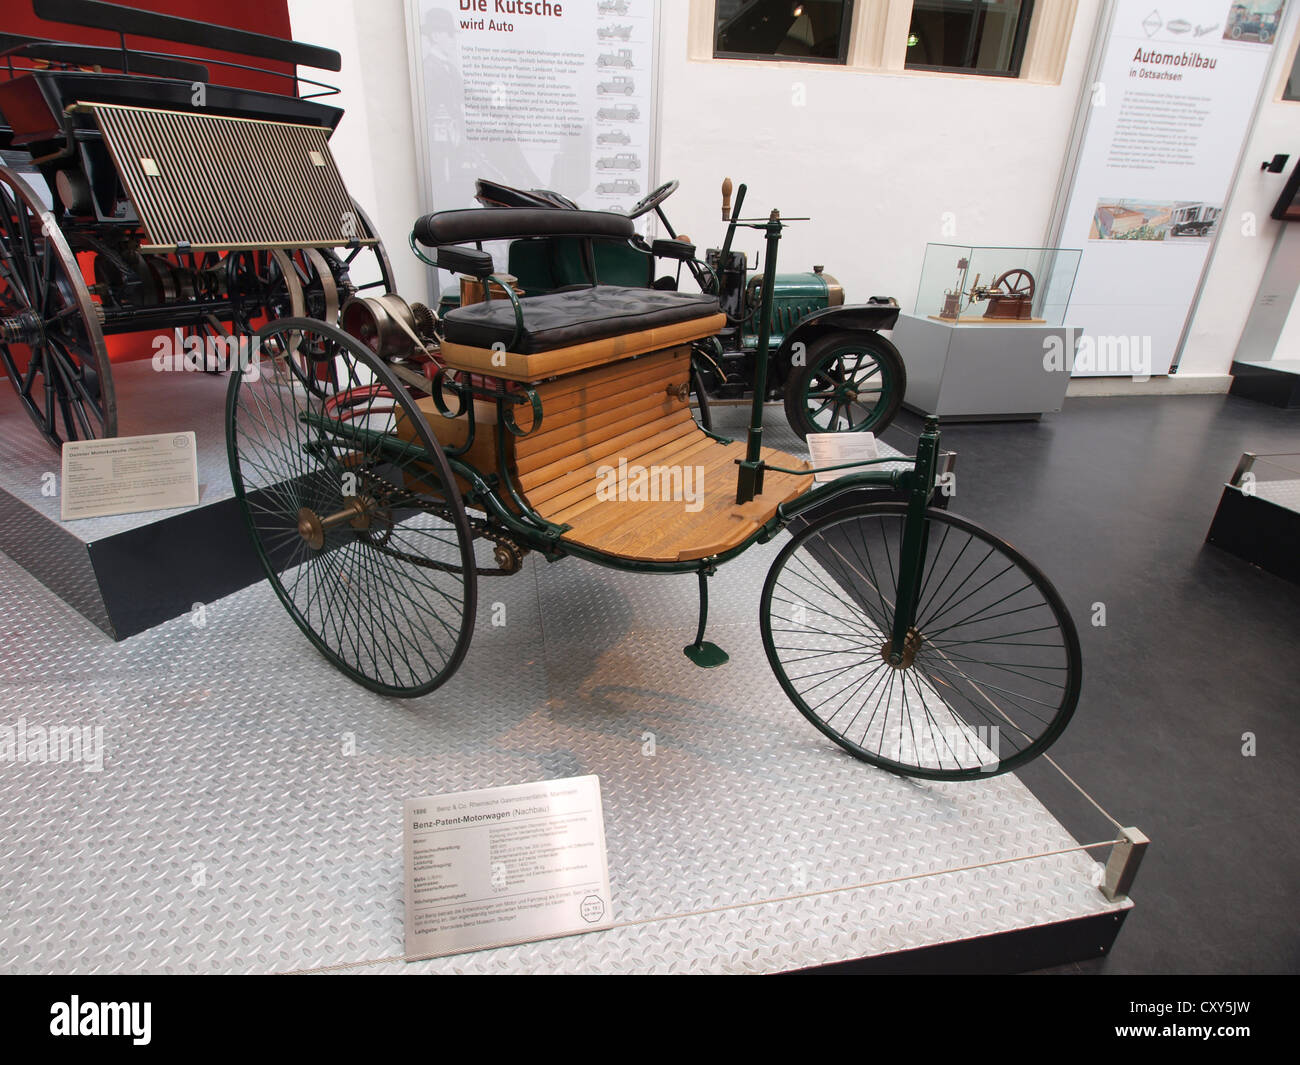 Benz 1886 Stockfotos & Benz 1886 Bilder - Alamy